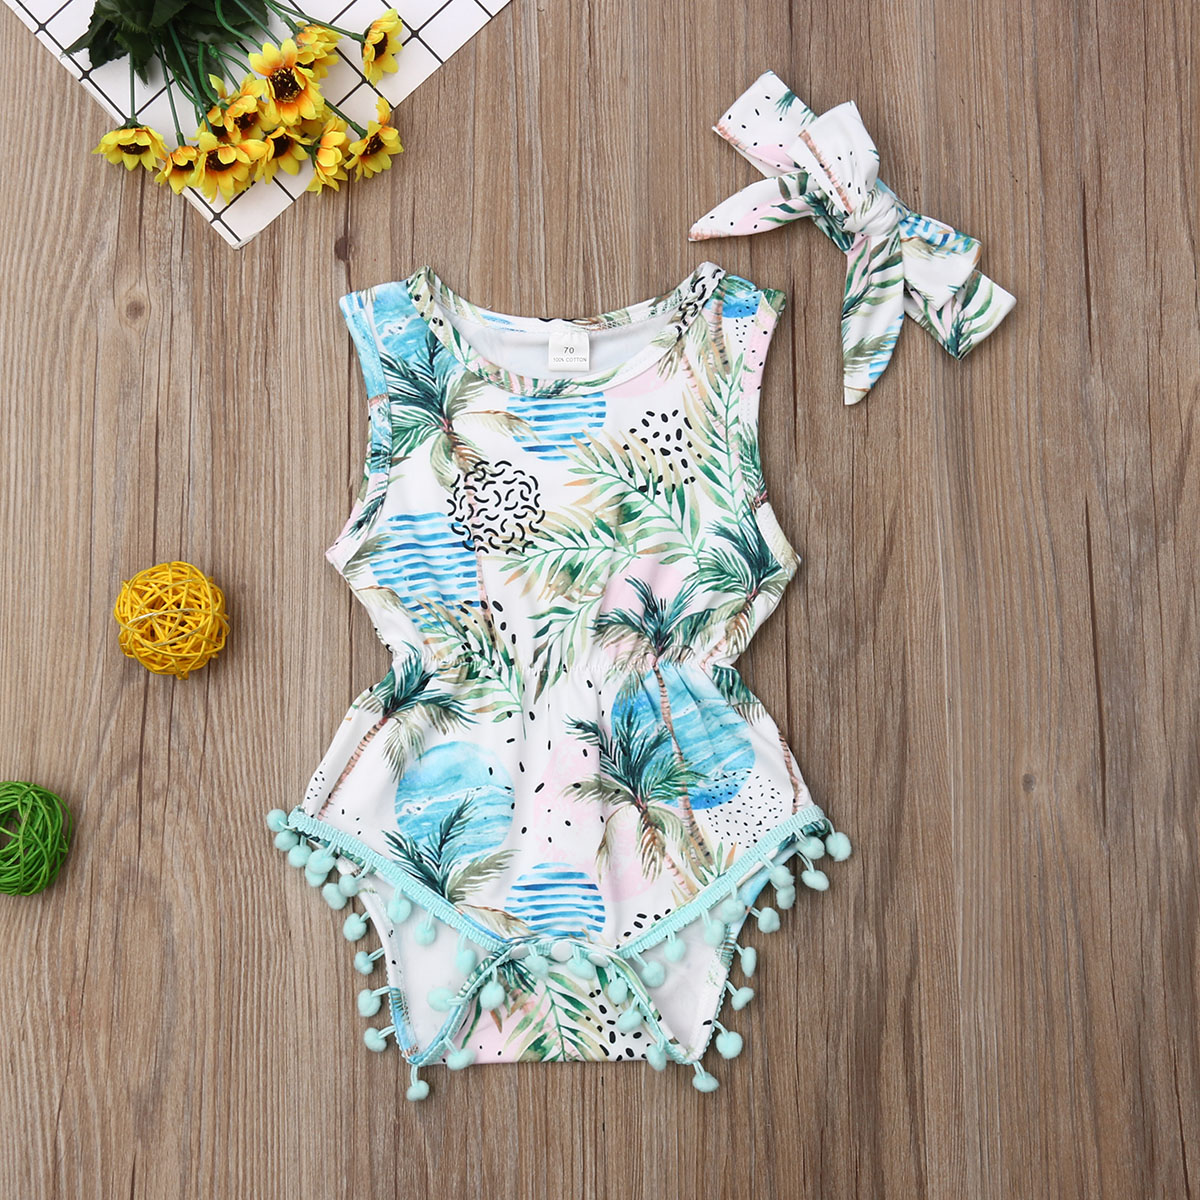 Pudcoco Newborn Baby Girl Clothes Sleeveless Print Tassel Romper Bowknot Headband 2Pcs Outfits Cotton Clothes Summer